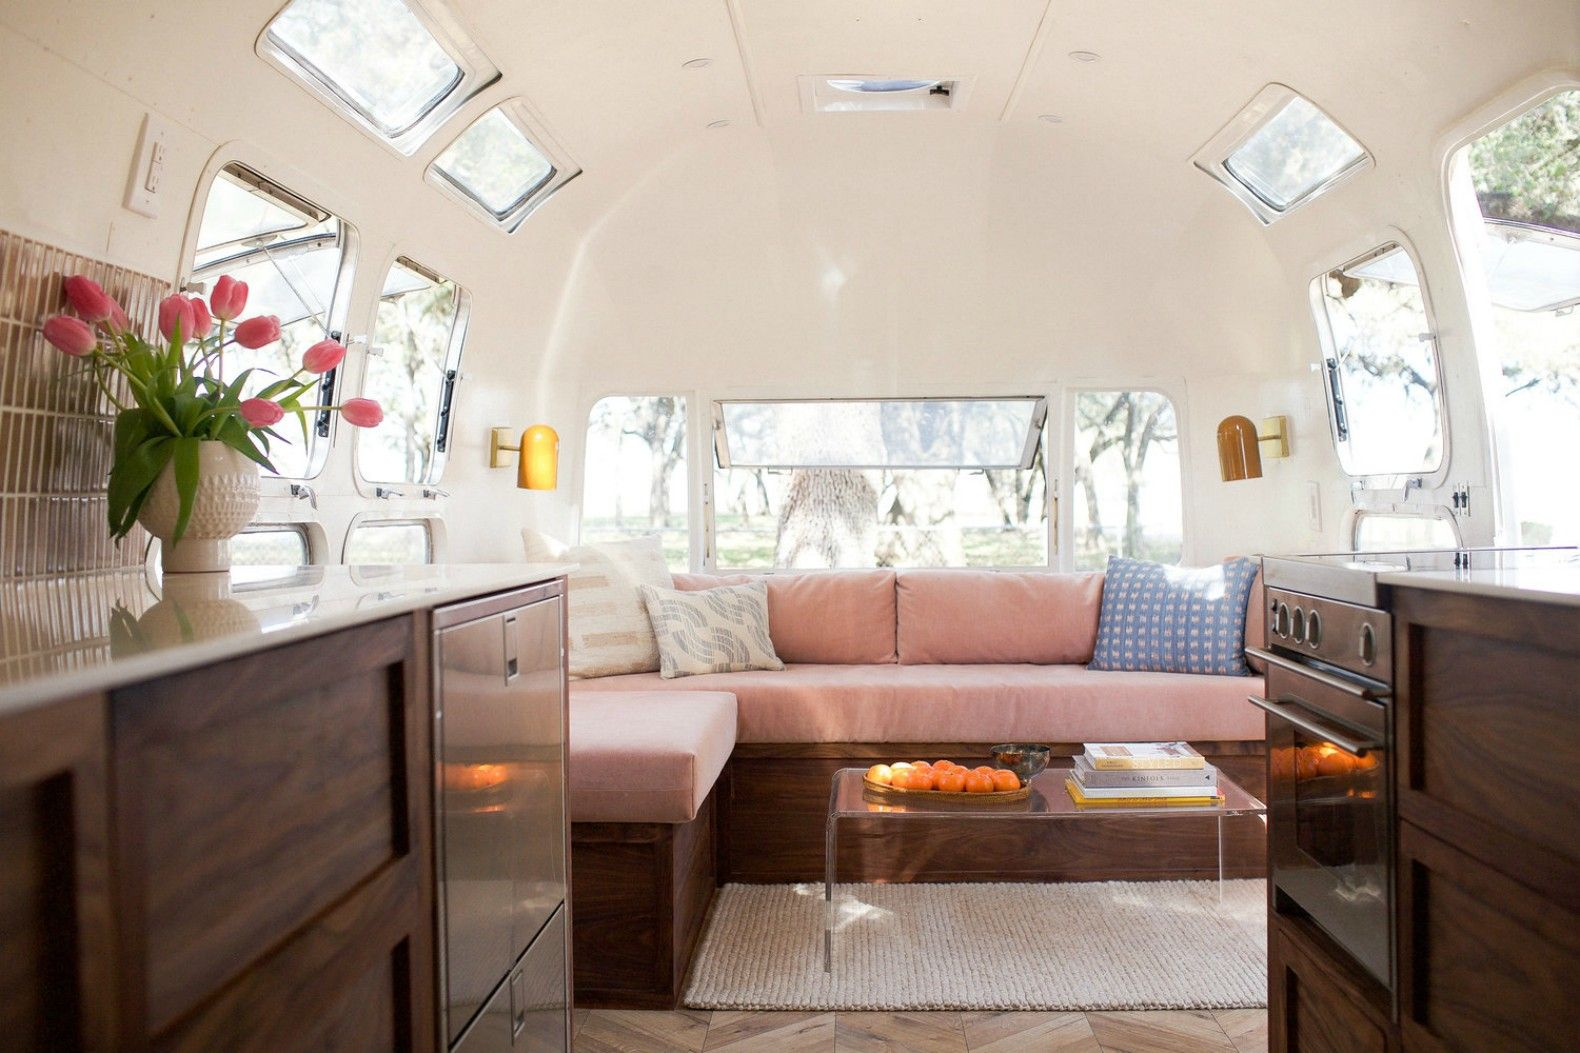 Couple restores an old Airstream into a chic tiny home on wheels ...